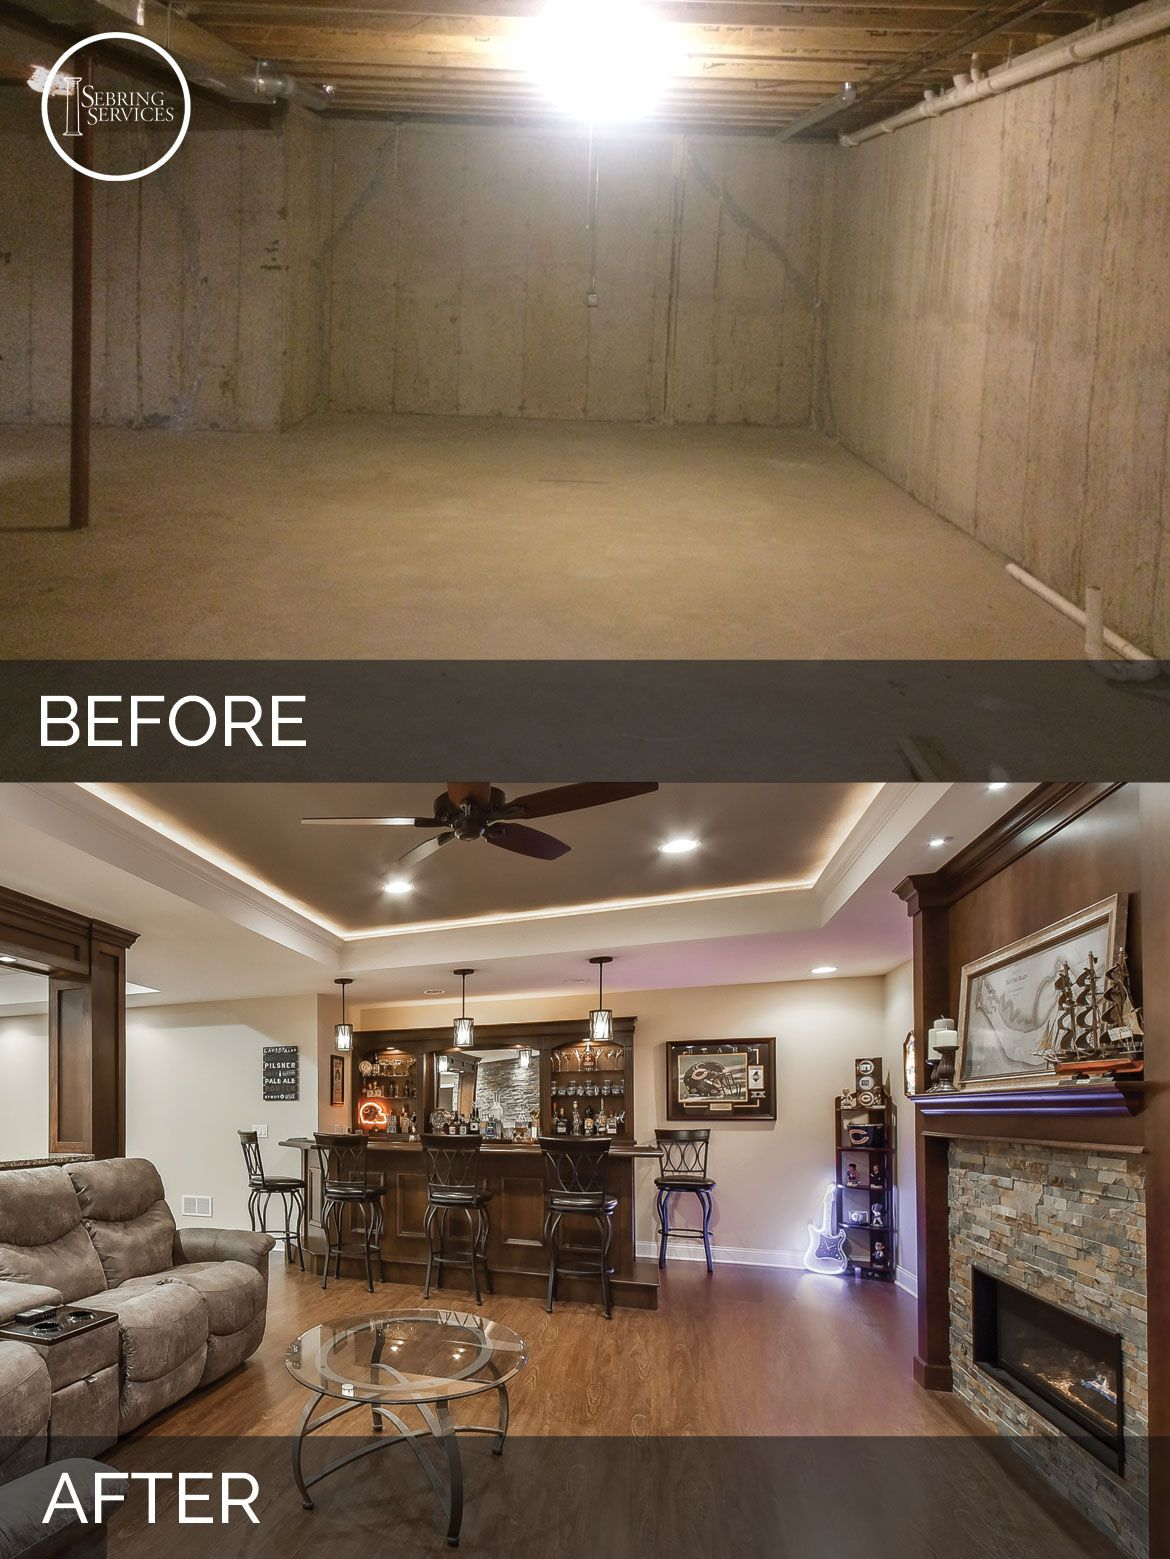 bolingbrook before after basement finish project sebring services basement pinterest. Black Bedroom Furniture Sets. Home Design Ideas